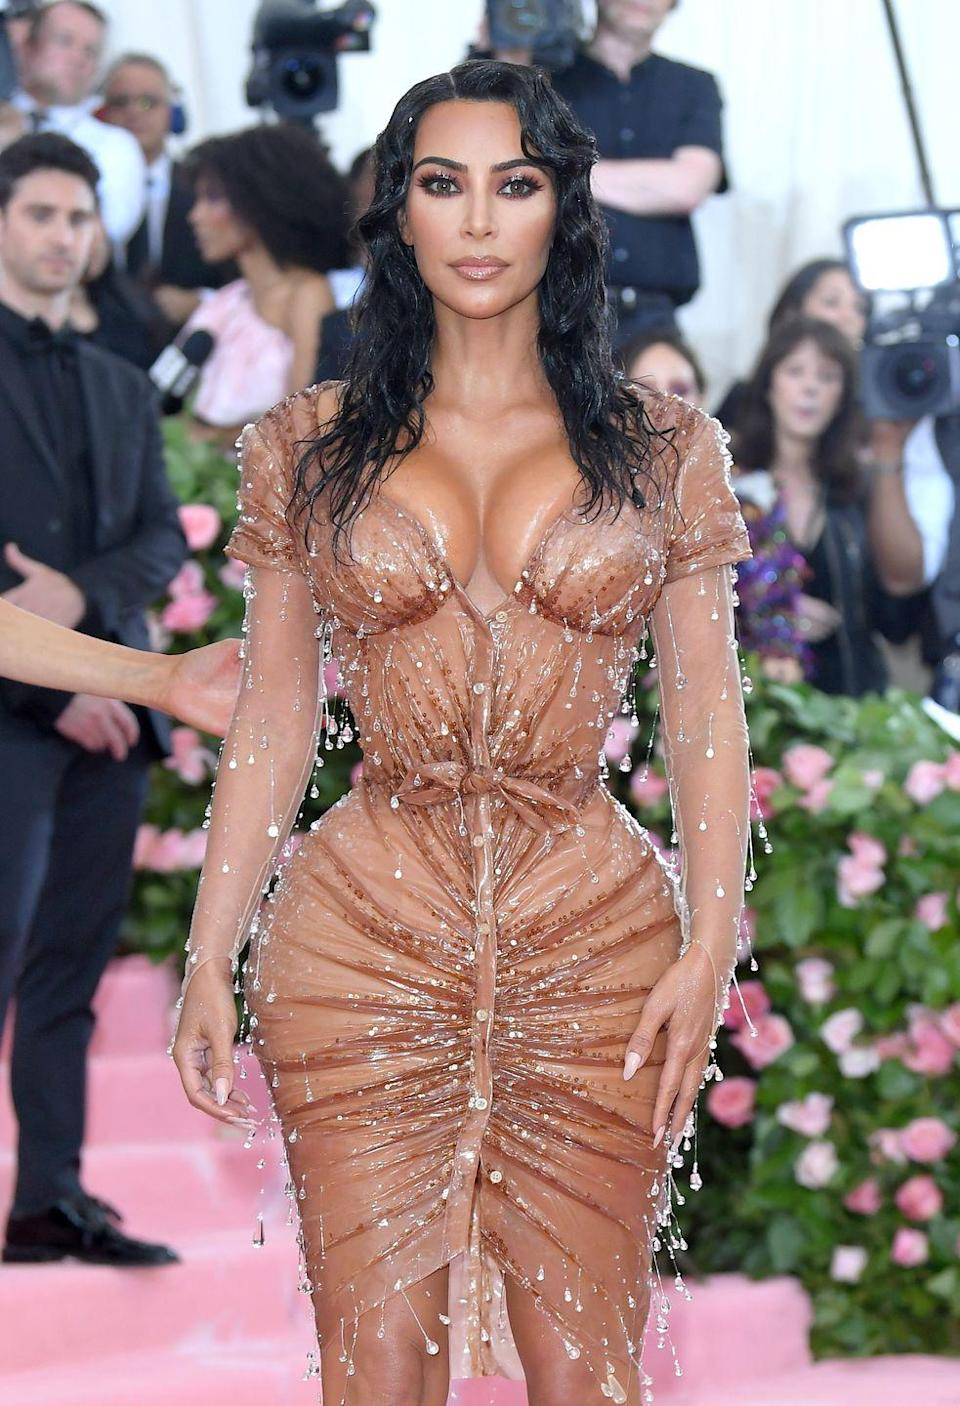 """<p>Kim Kardashian turned heads at the Met Gala again in 2019 while wearing this sheer beaded dress made by Thierry Mugler. This dress was considered controversial because in addition to being very sheer, people just could <em>not</em> believe Kim's waist was really that small. Turns out, the <a href=""""https://www.wmagazine.com/story/kim-kardashian-met-gala-corset-mugler-mr-pearl/"""" rel=""""nofollow noopener"""" target=""""_blank"""" data-ylk=""""slk:secret was a tight, custom-made corset and a rigorous exercise schedule"""" class=""""link rapid-noclick-resp"""">secret was a tight, custom-made corset and a rigorous exercise schedule</a>. </p>"""